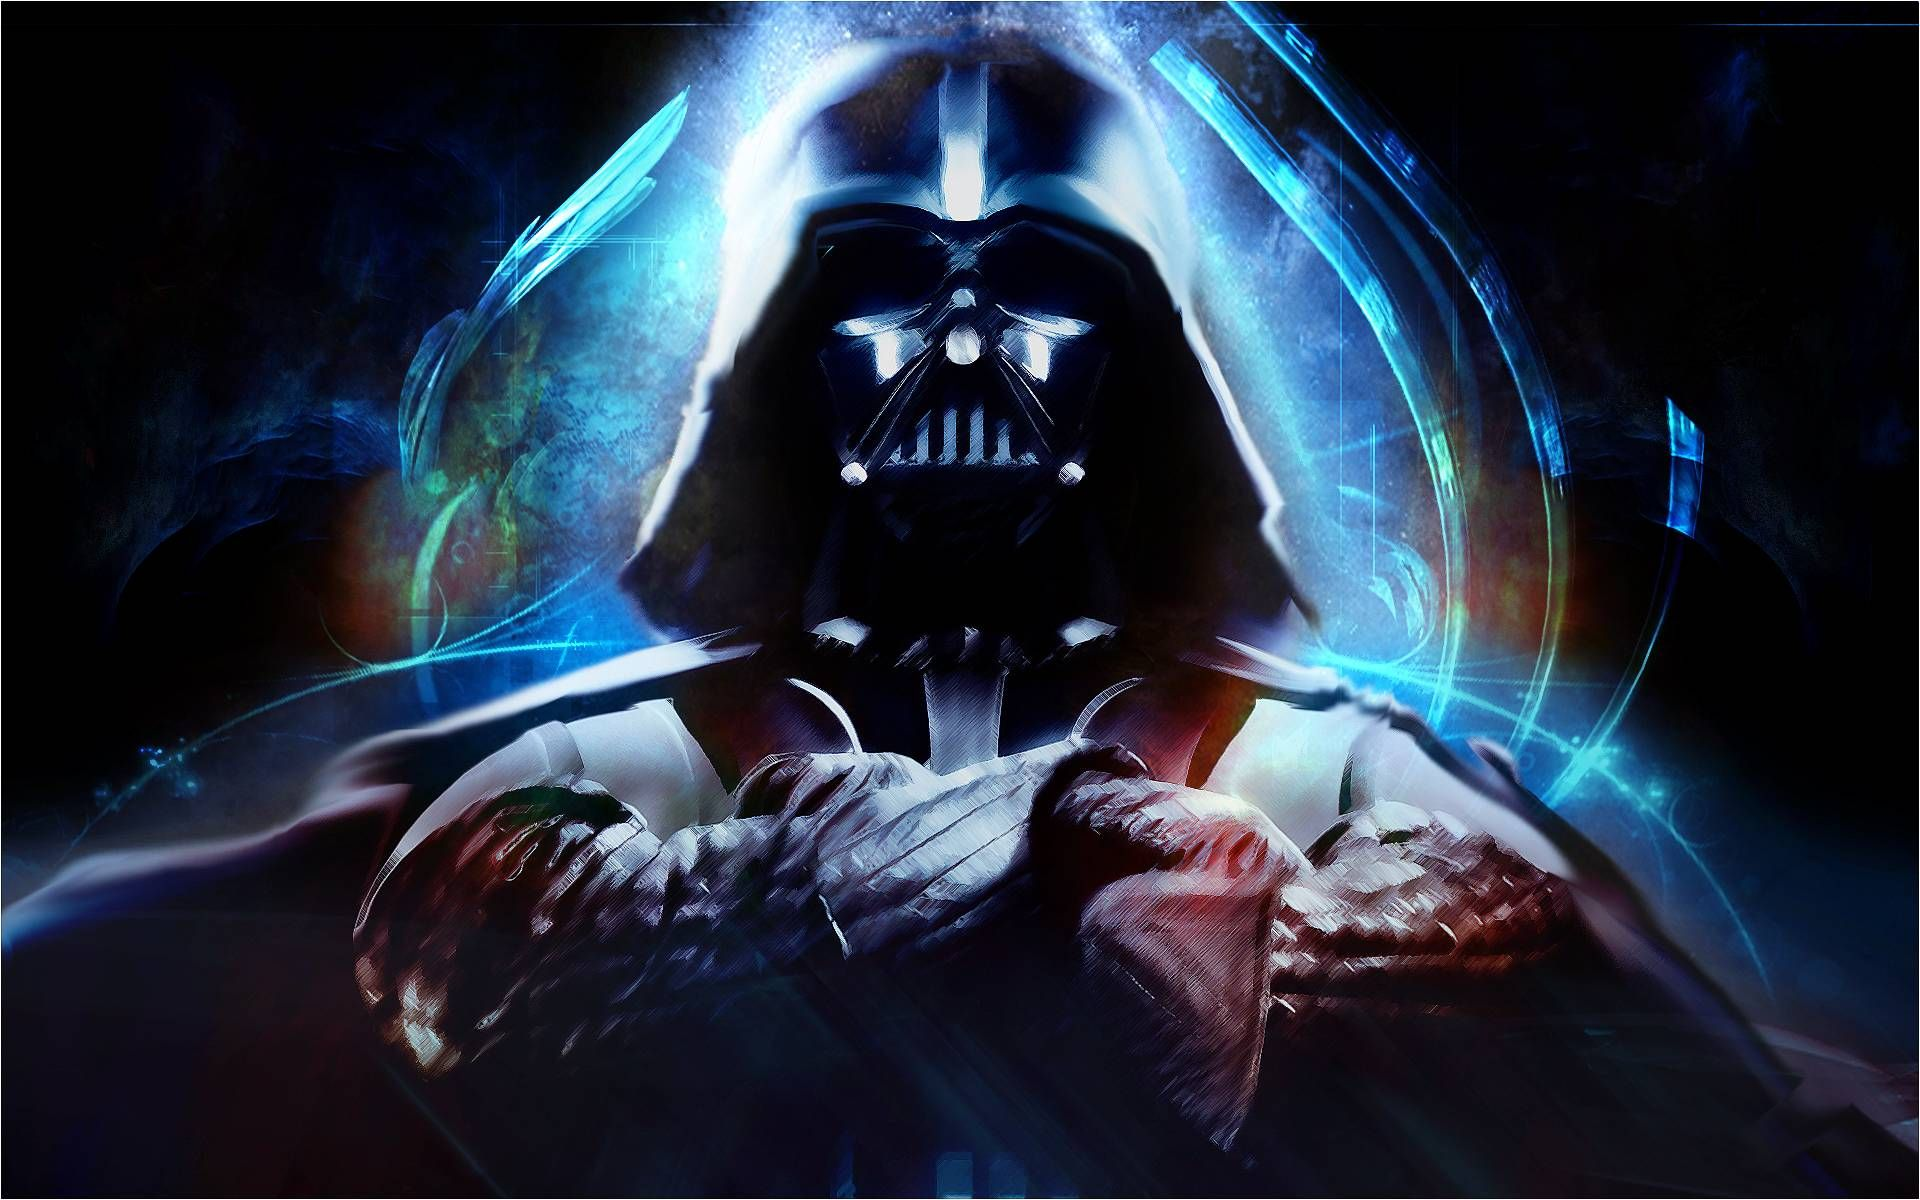 Darth Vader Anakin Skywalker Wallpapers HD Wallpapers HD